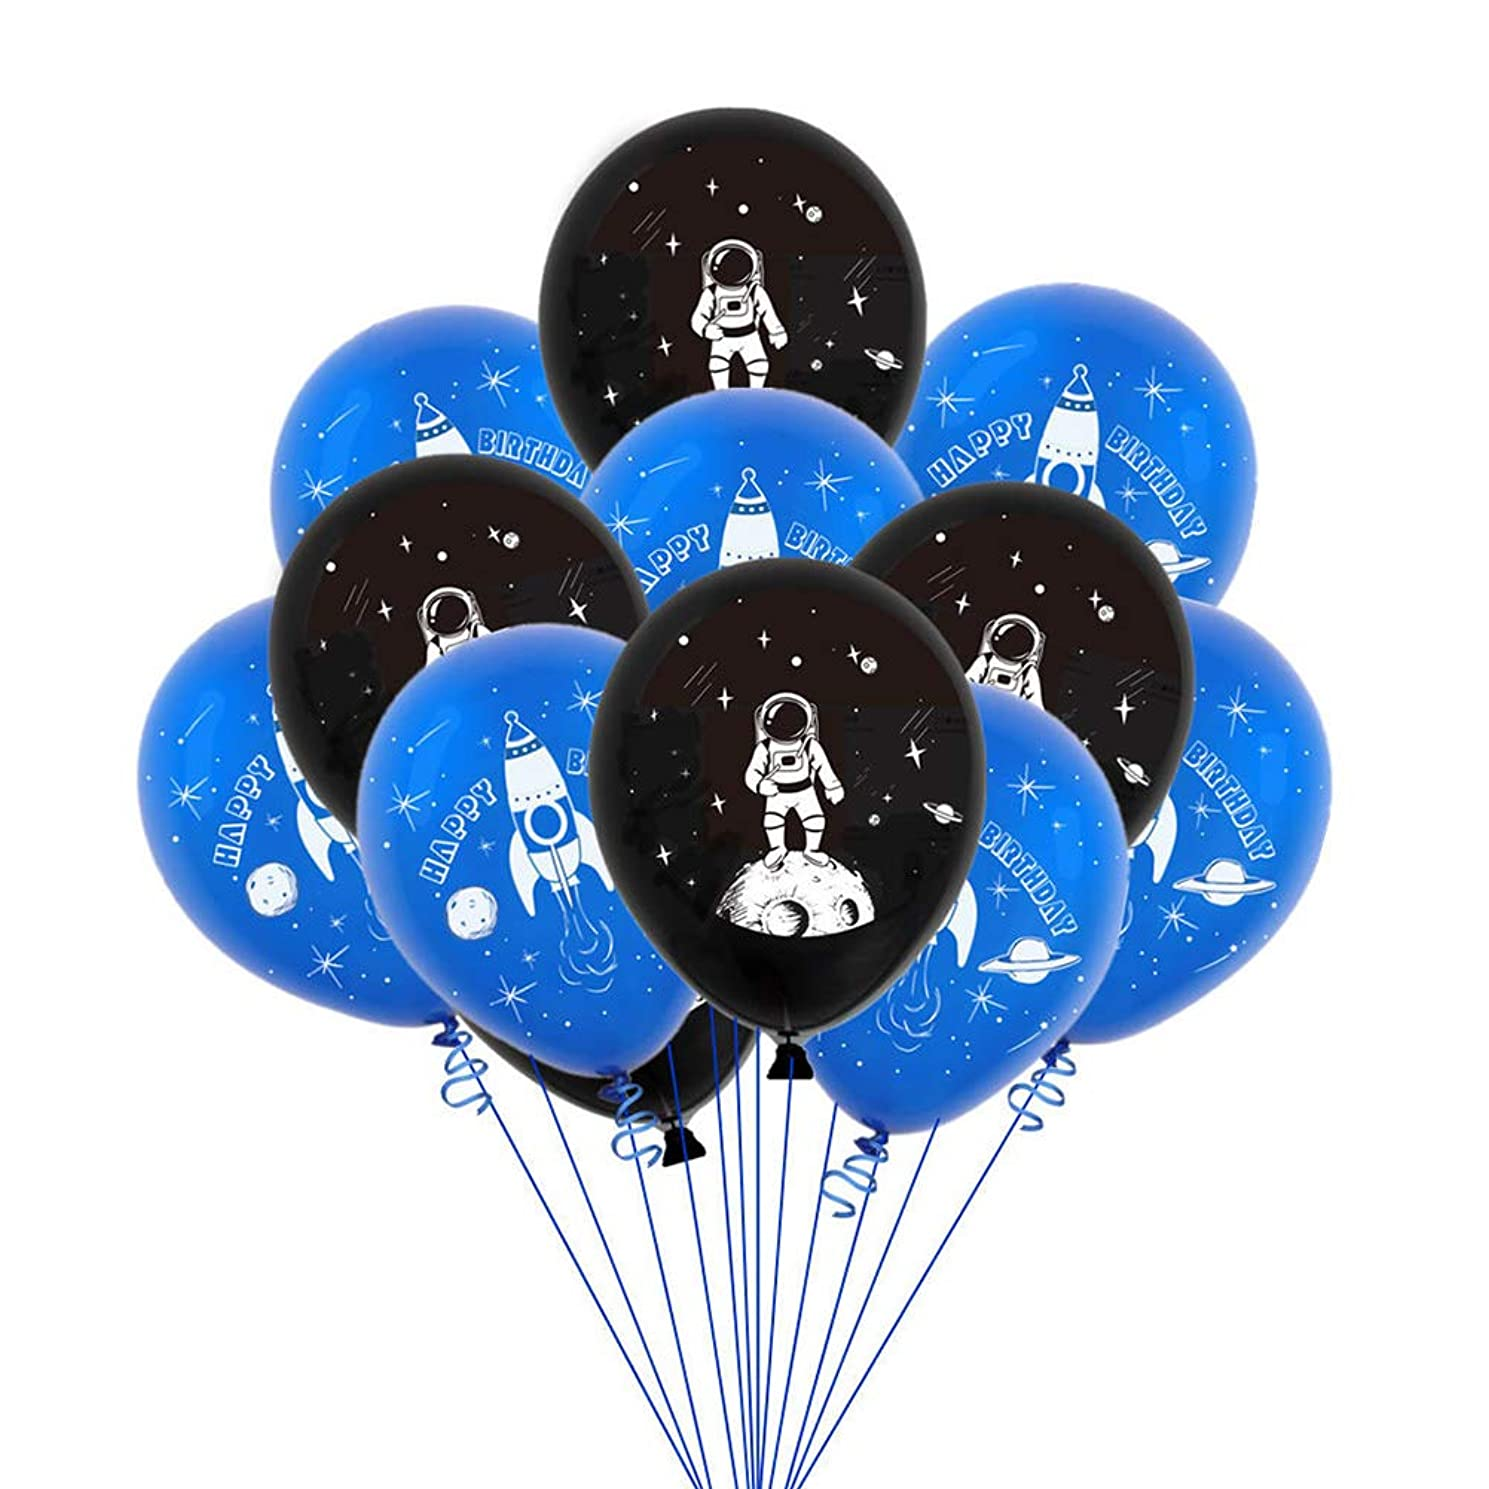 Amosfun 20pcs Party Balloons Astronaut Space Rocket Printing Latex Balloons Party Balloons Inflatables Balloons for Baby Shower Kid's Birthday Party Decorations 12 Inch